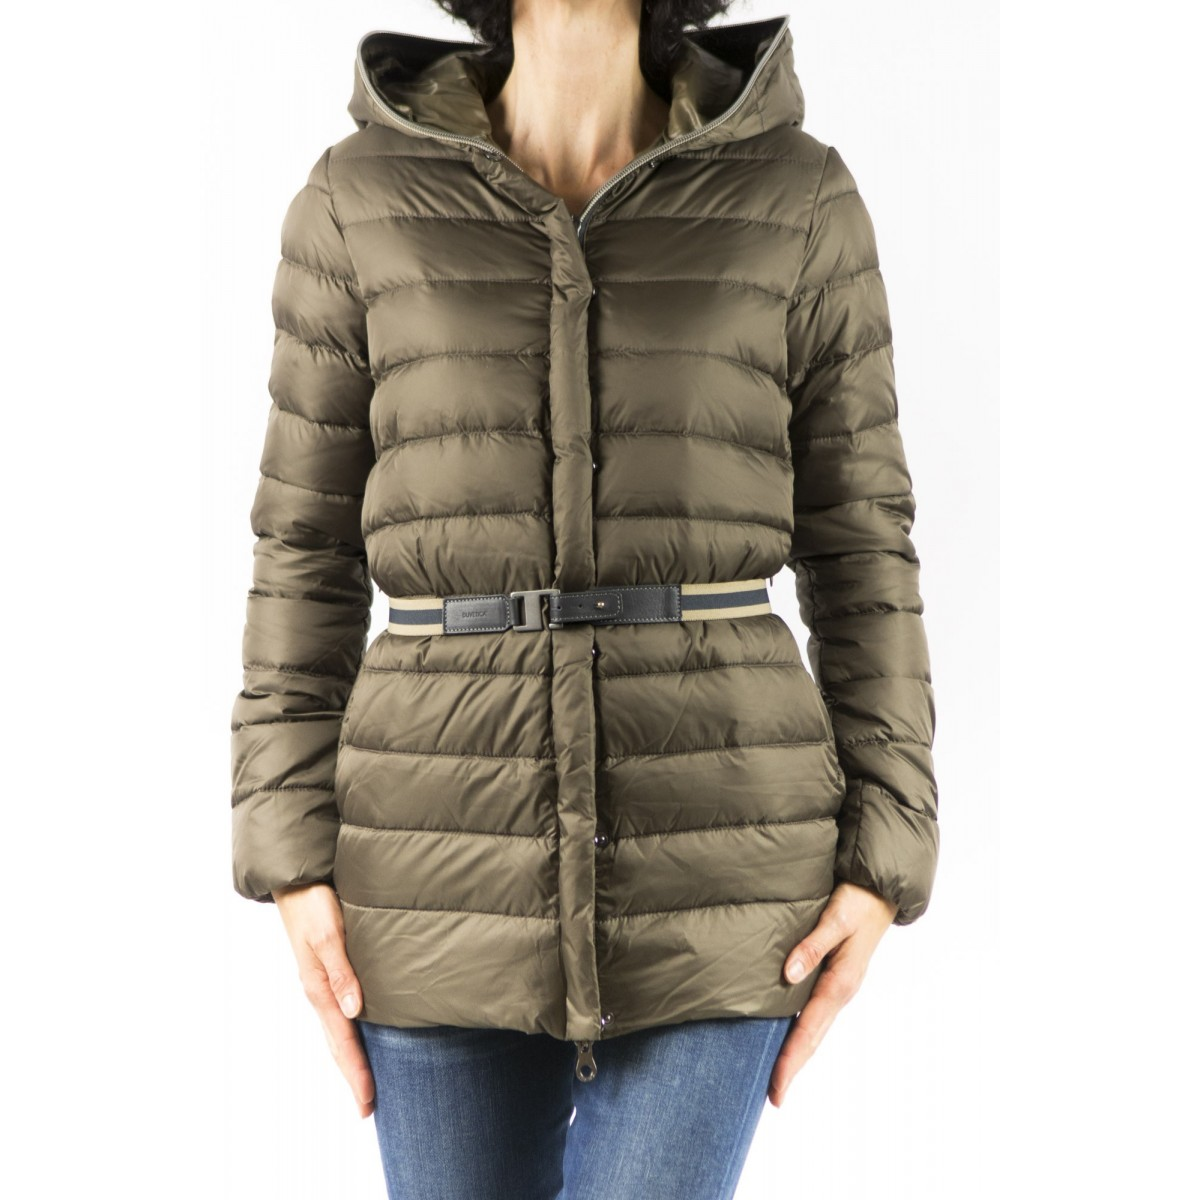 Down Jacket Duvetica - Morthond 152-D.4360.00/1164 919 - Carbone